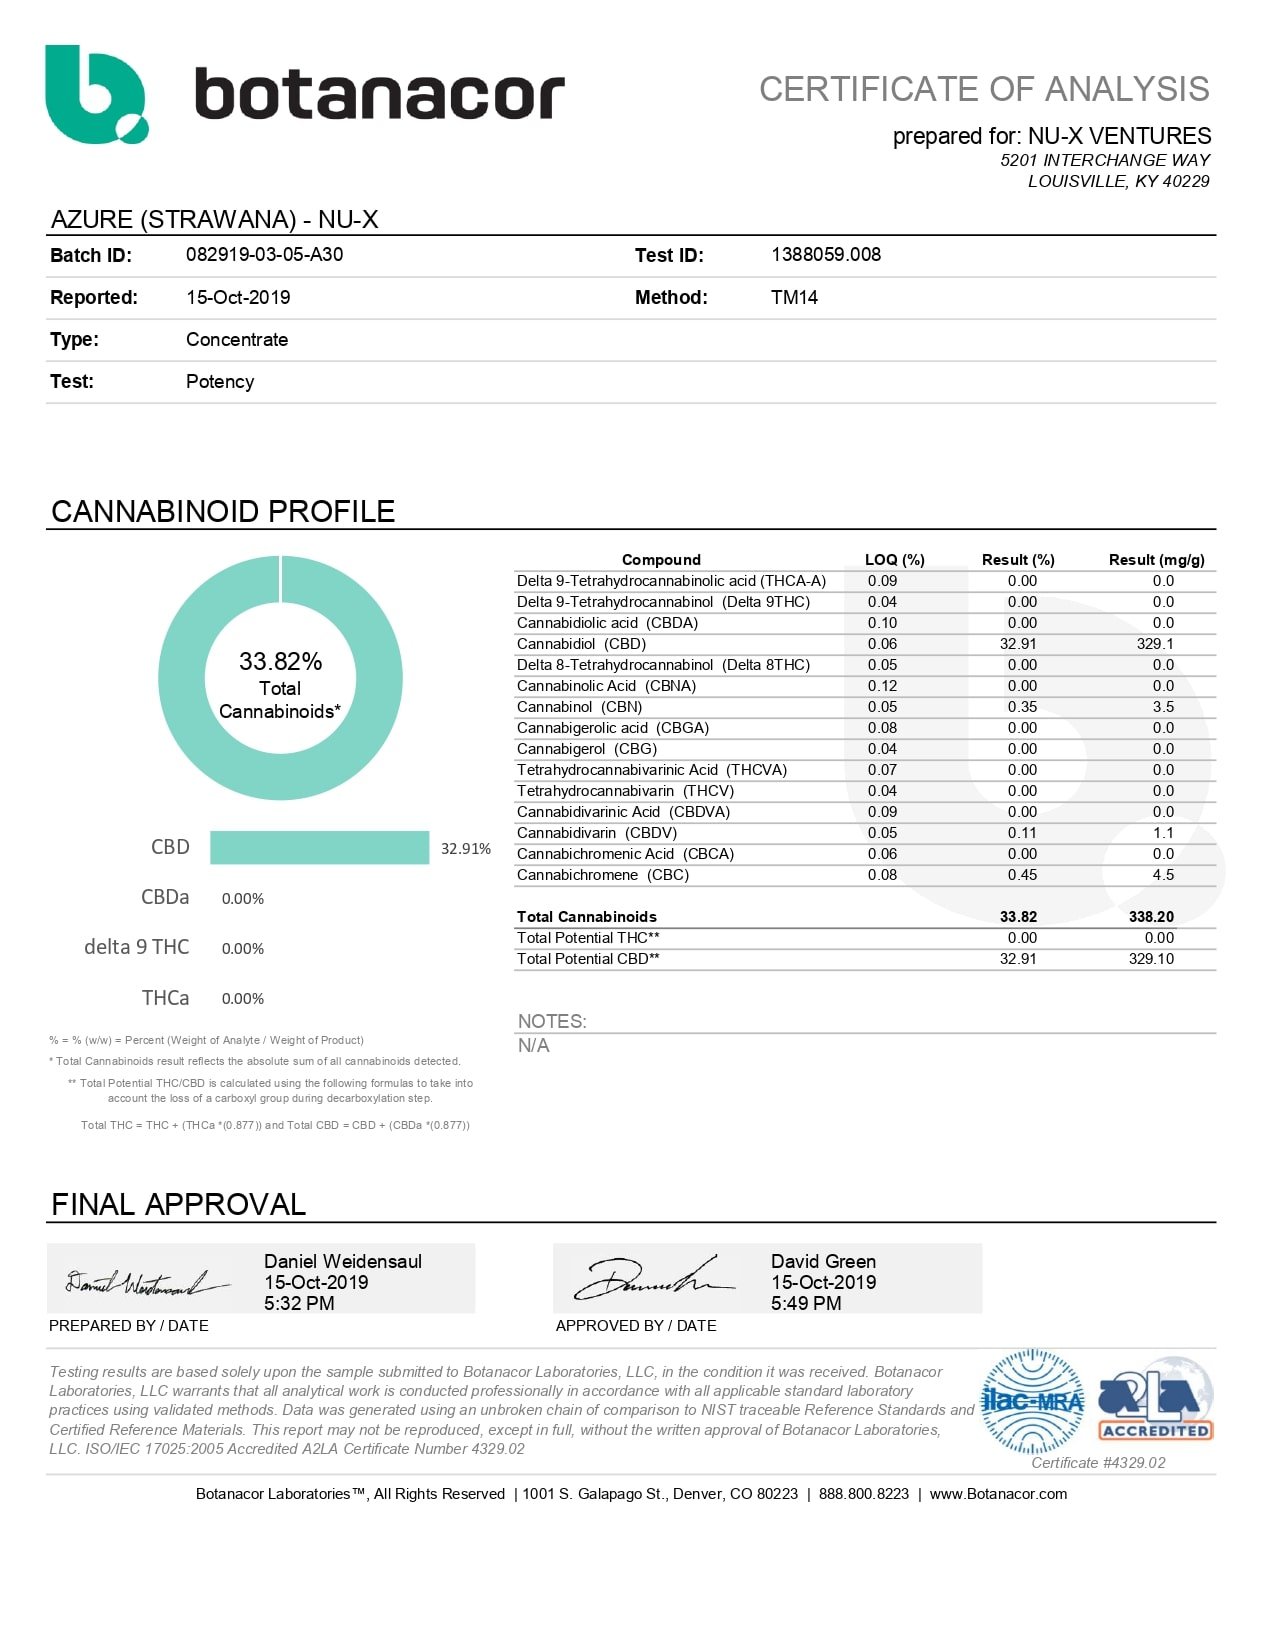 NU-X CBD eLiquid Concentrate Lab Report | Strawberry - Azure 3000mg